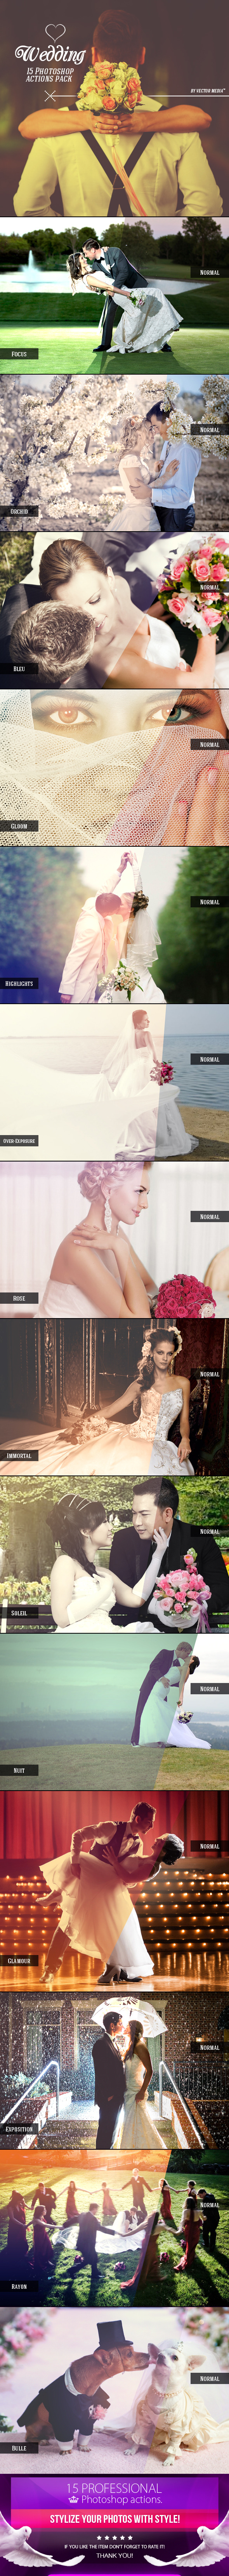 Wedding - Photoshop Actions - Photo Effects Actions